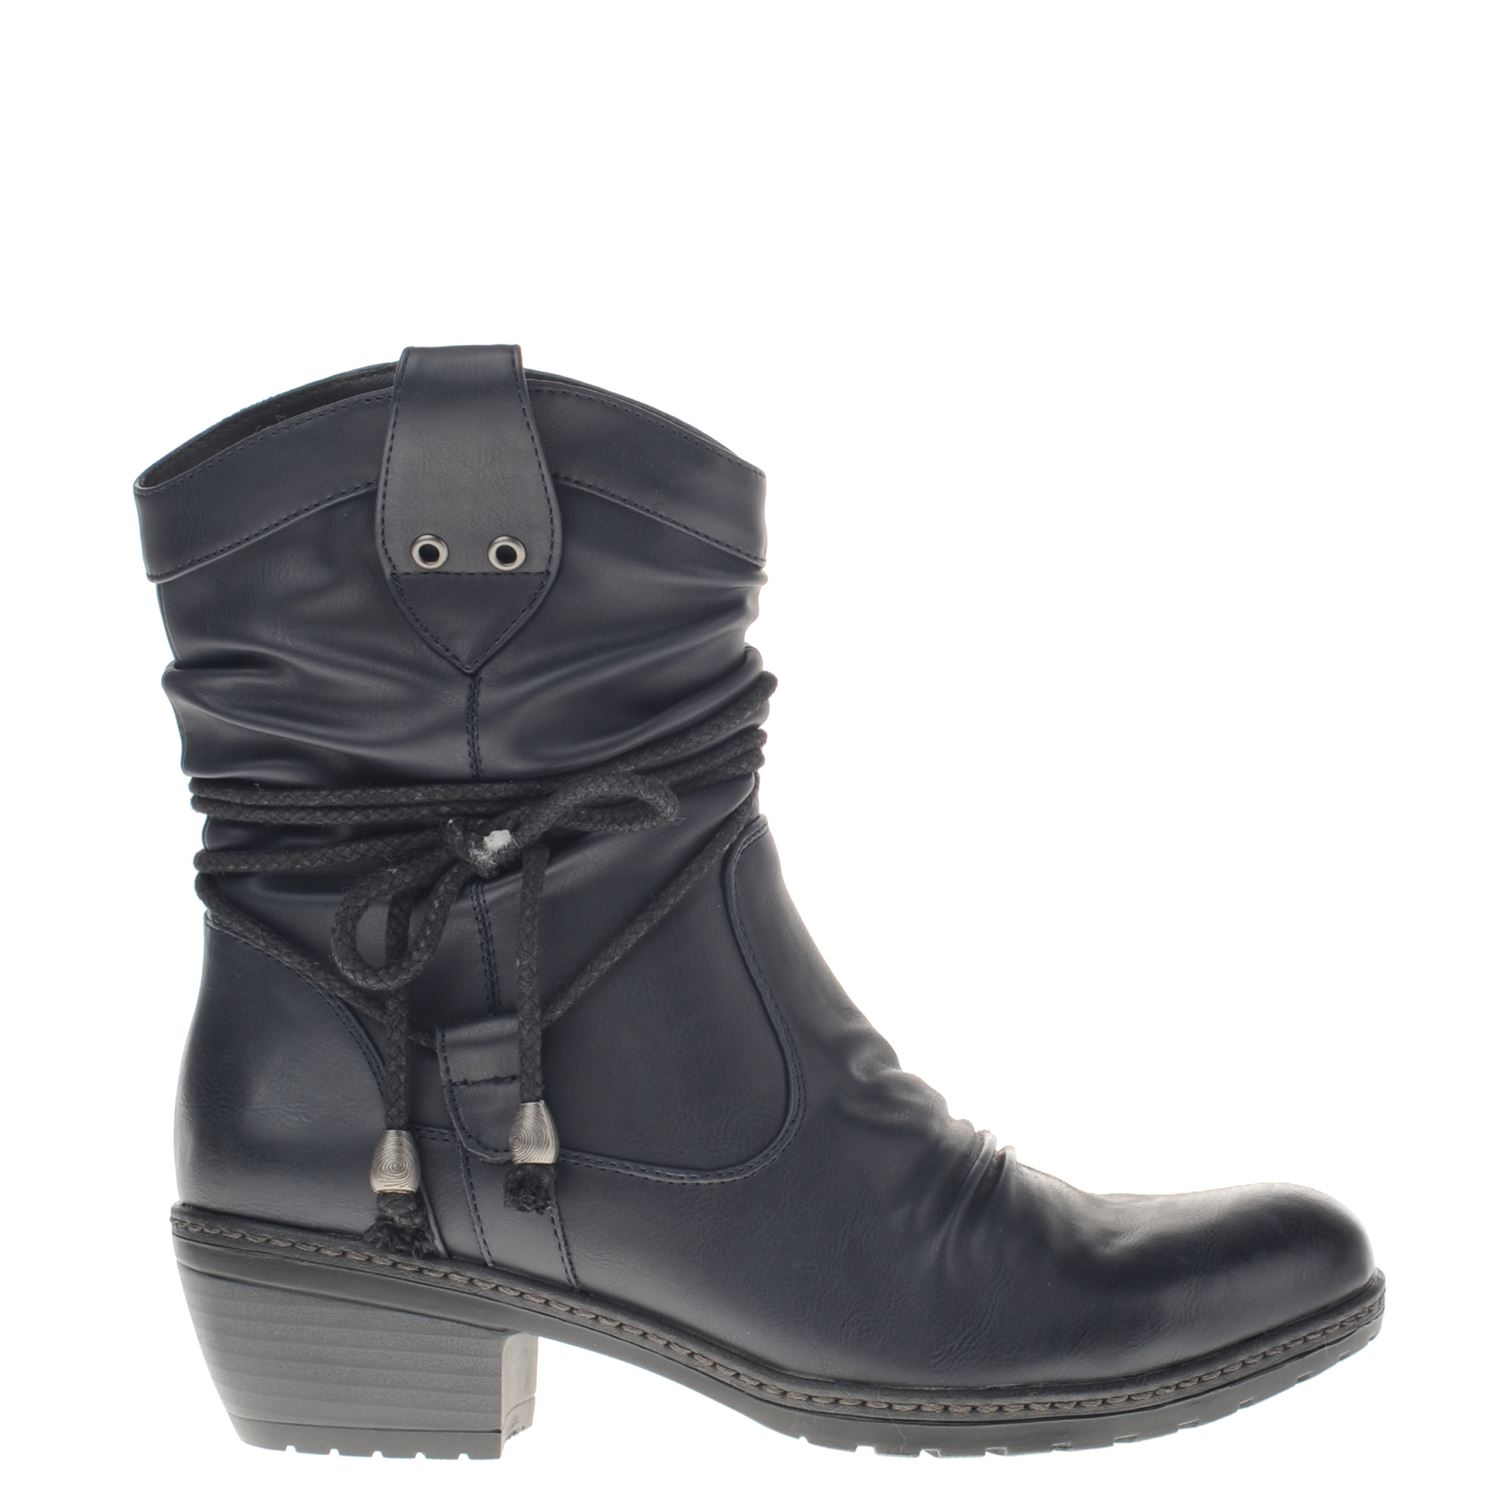 Bottines Noir Rieker CkY0psu